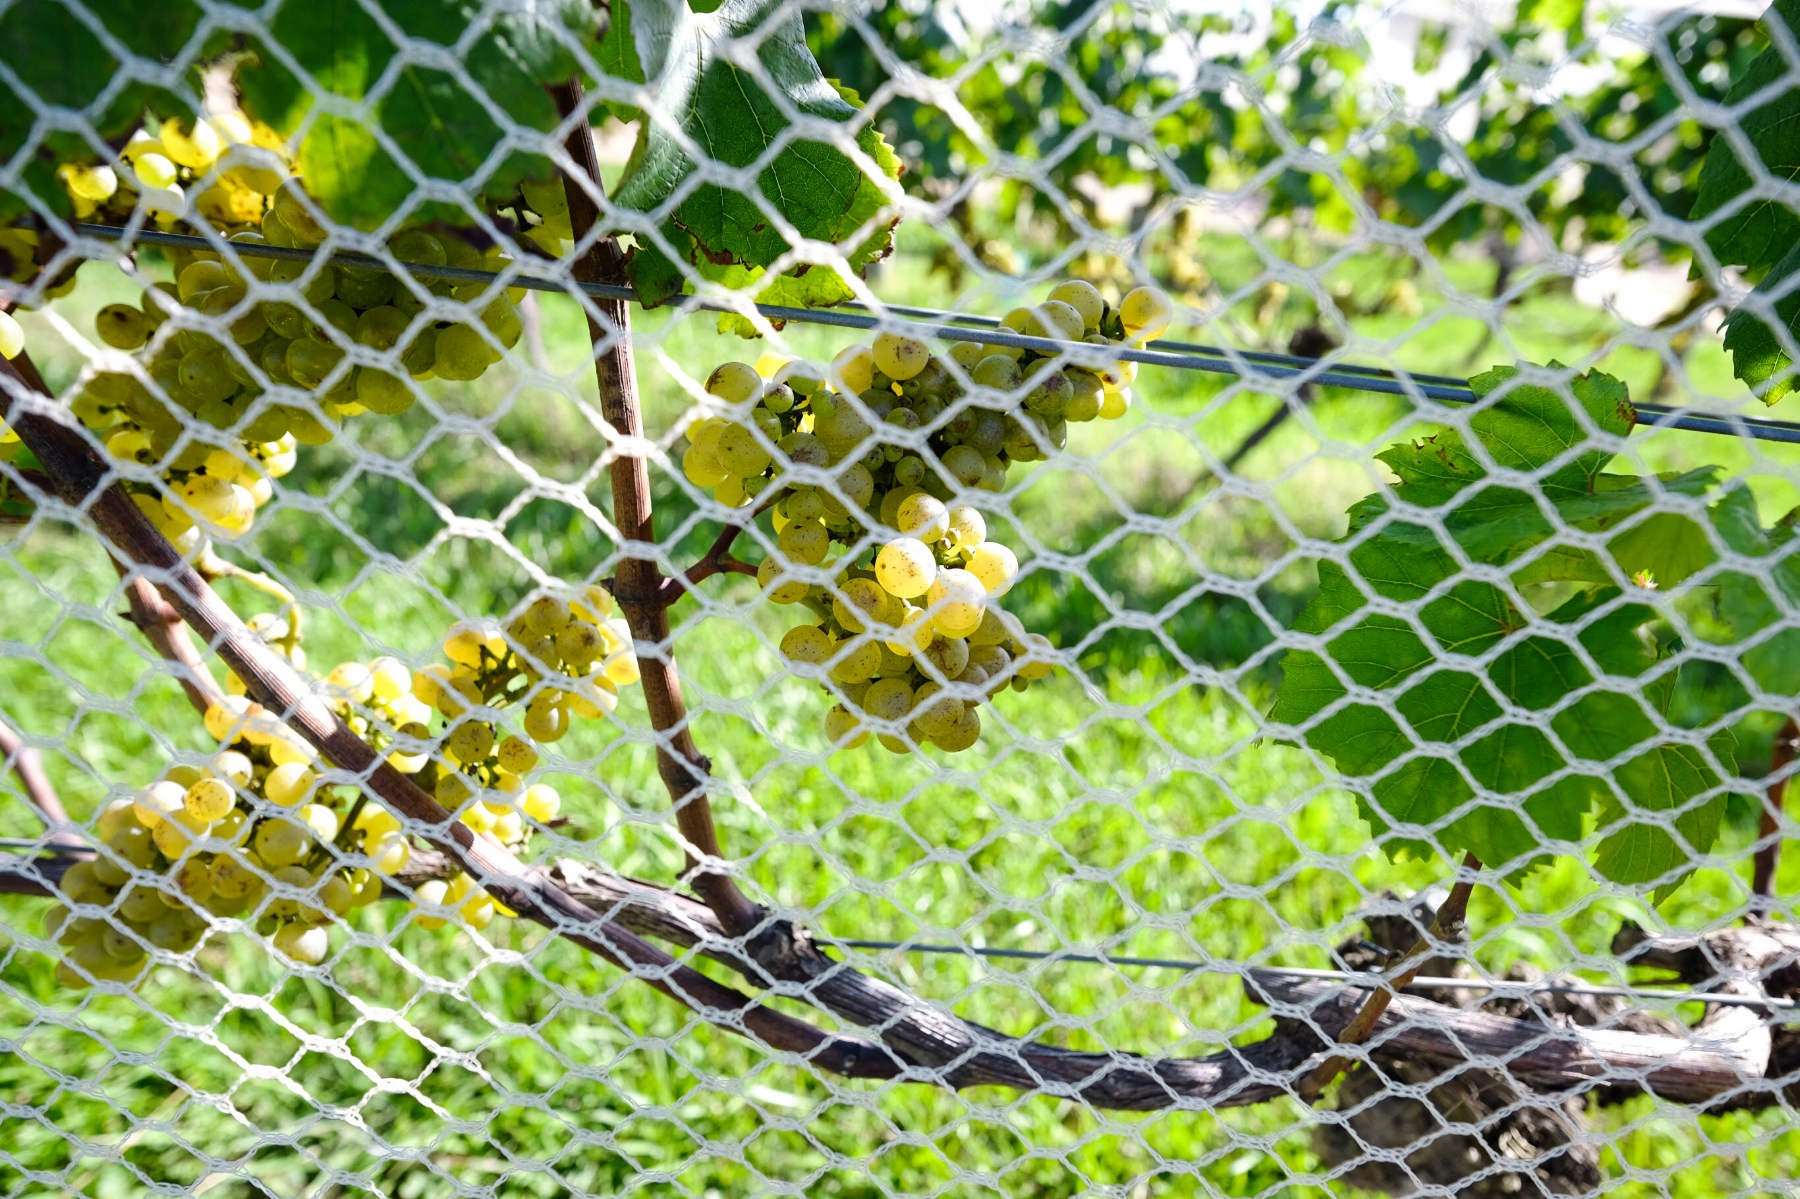 Green grapes waiheke island new zealand